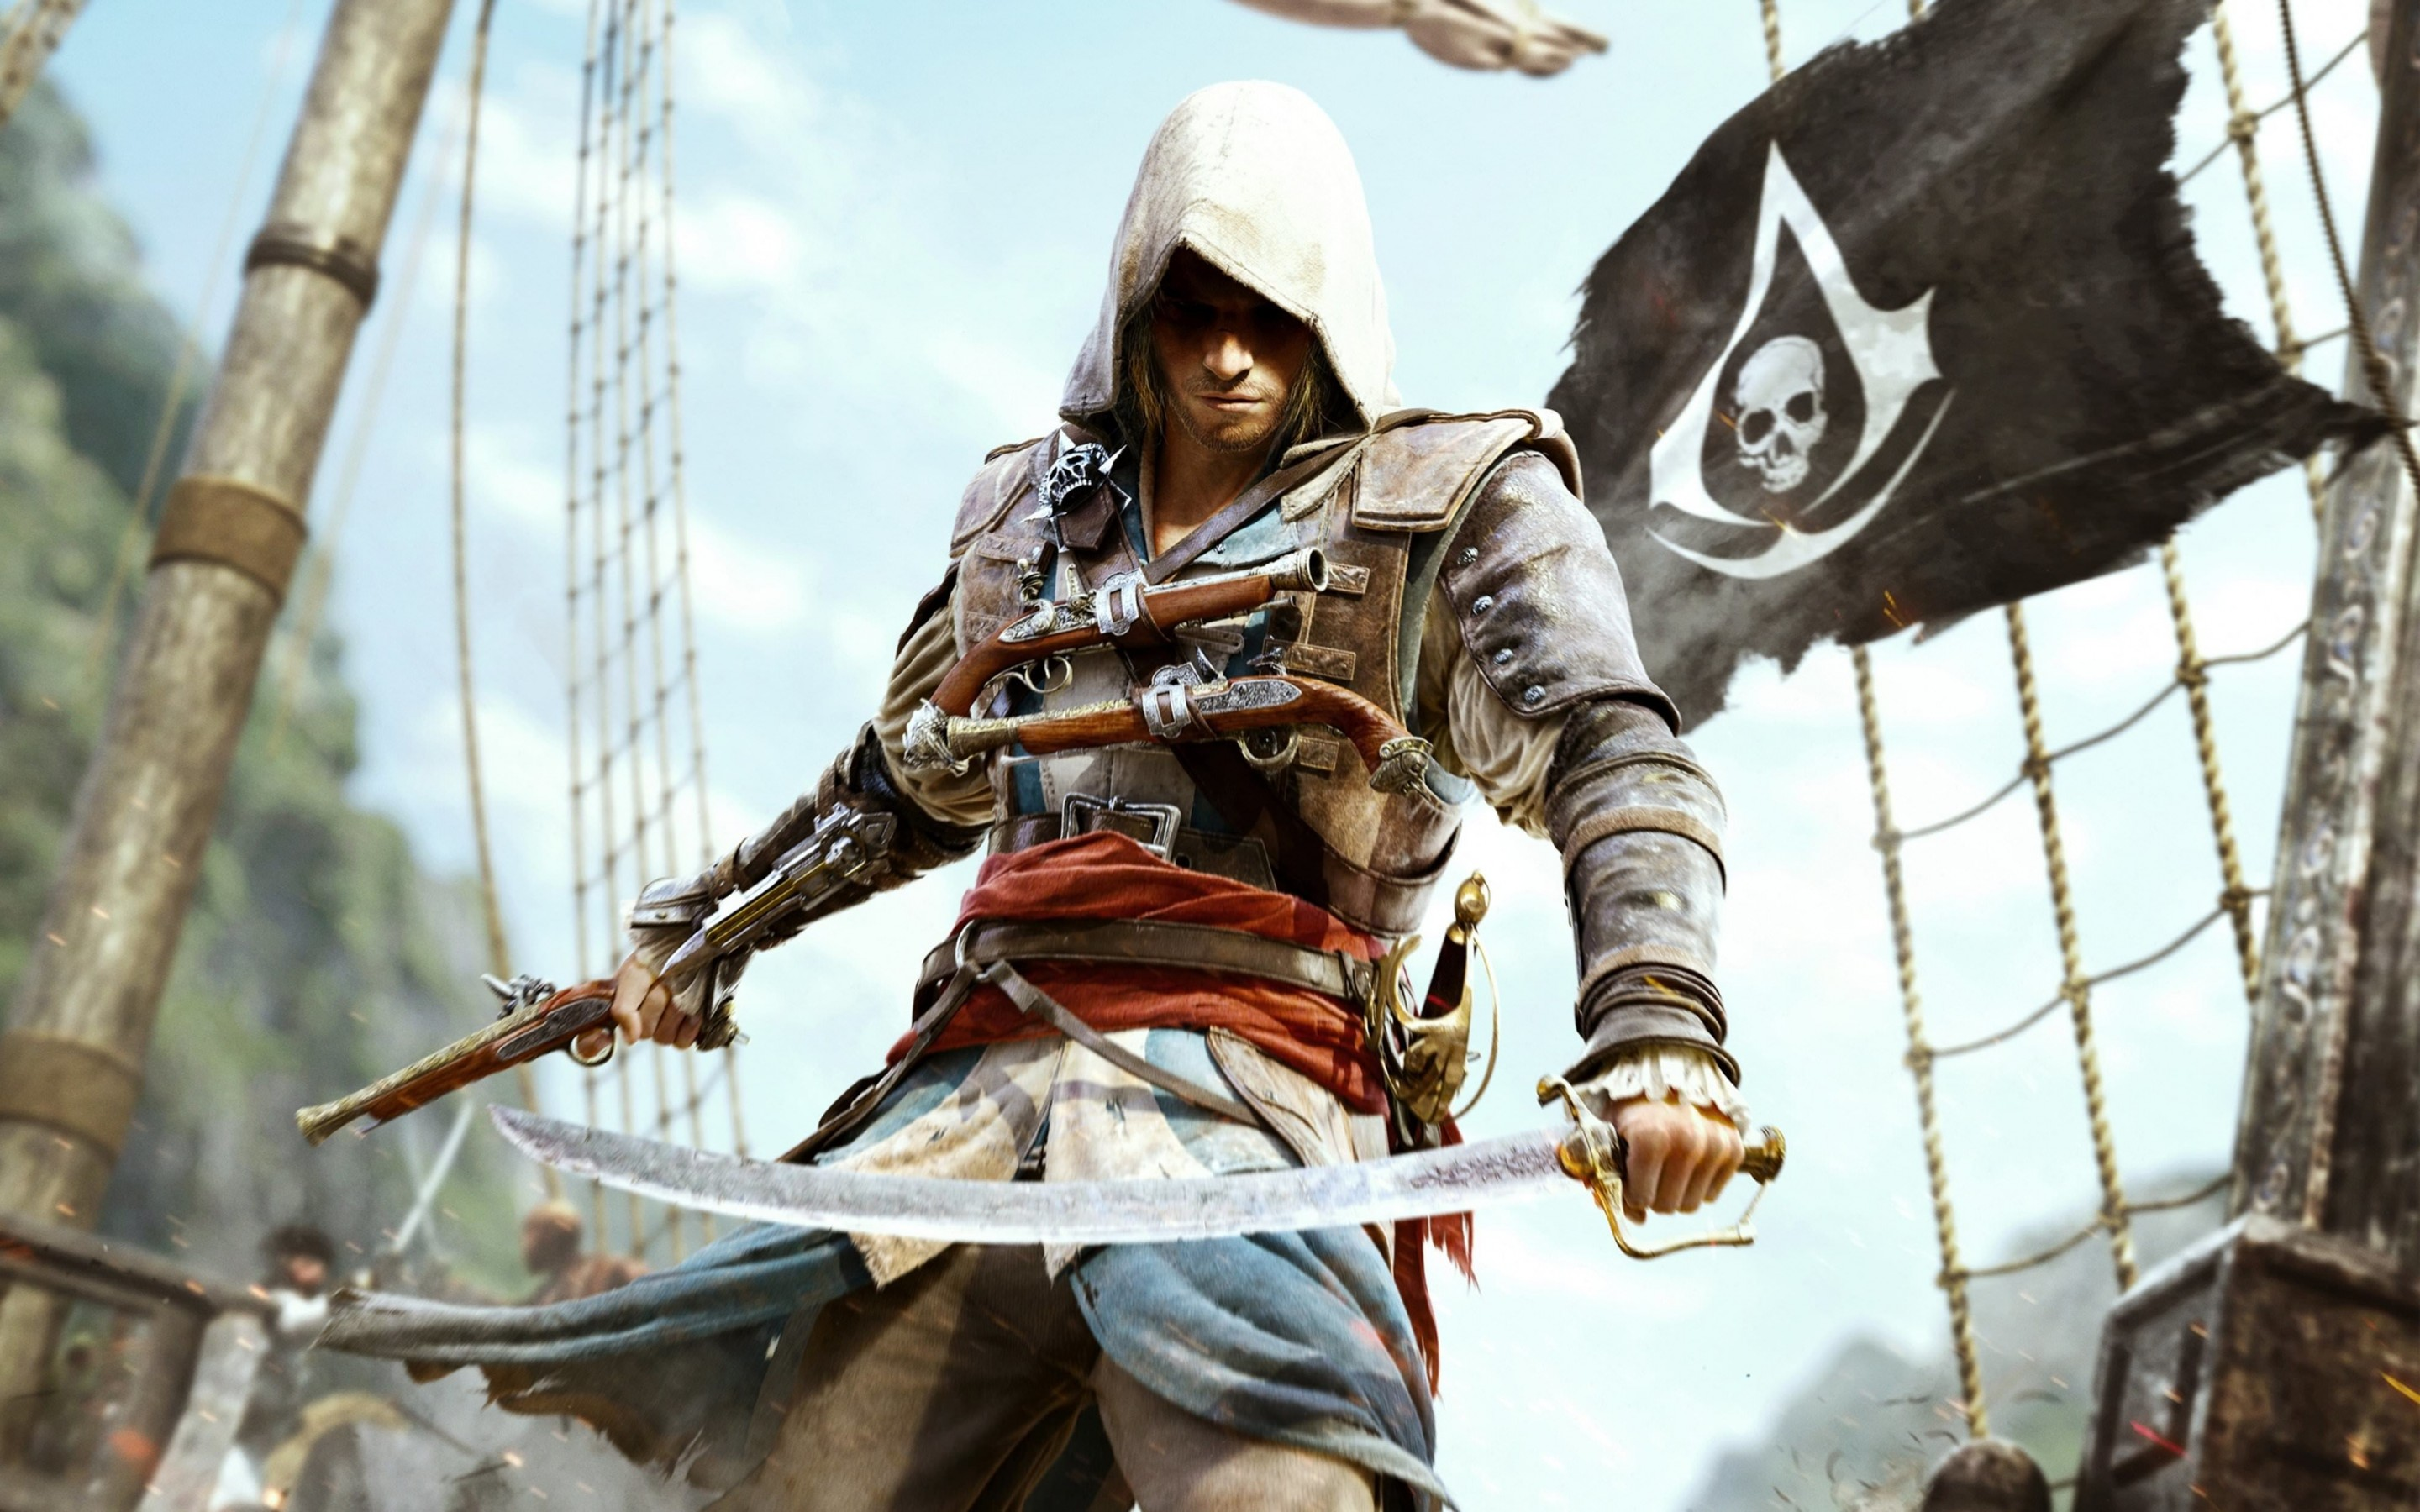 Assassin's Creed IV: Black Flag Wallpaper for Desktop 2880x1800